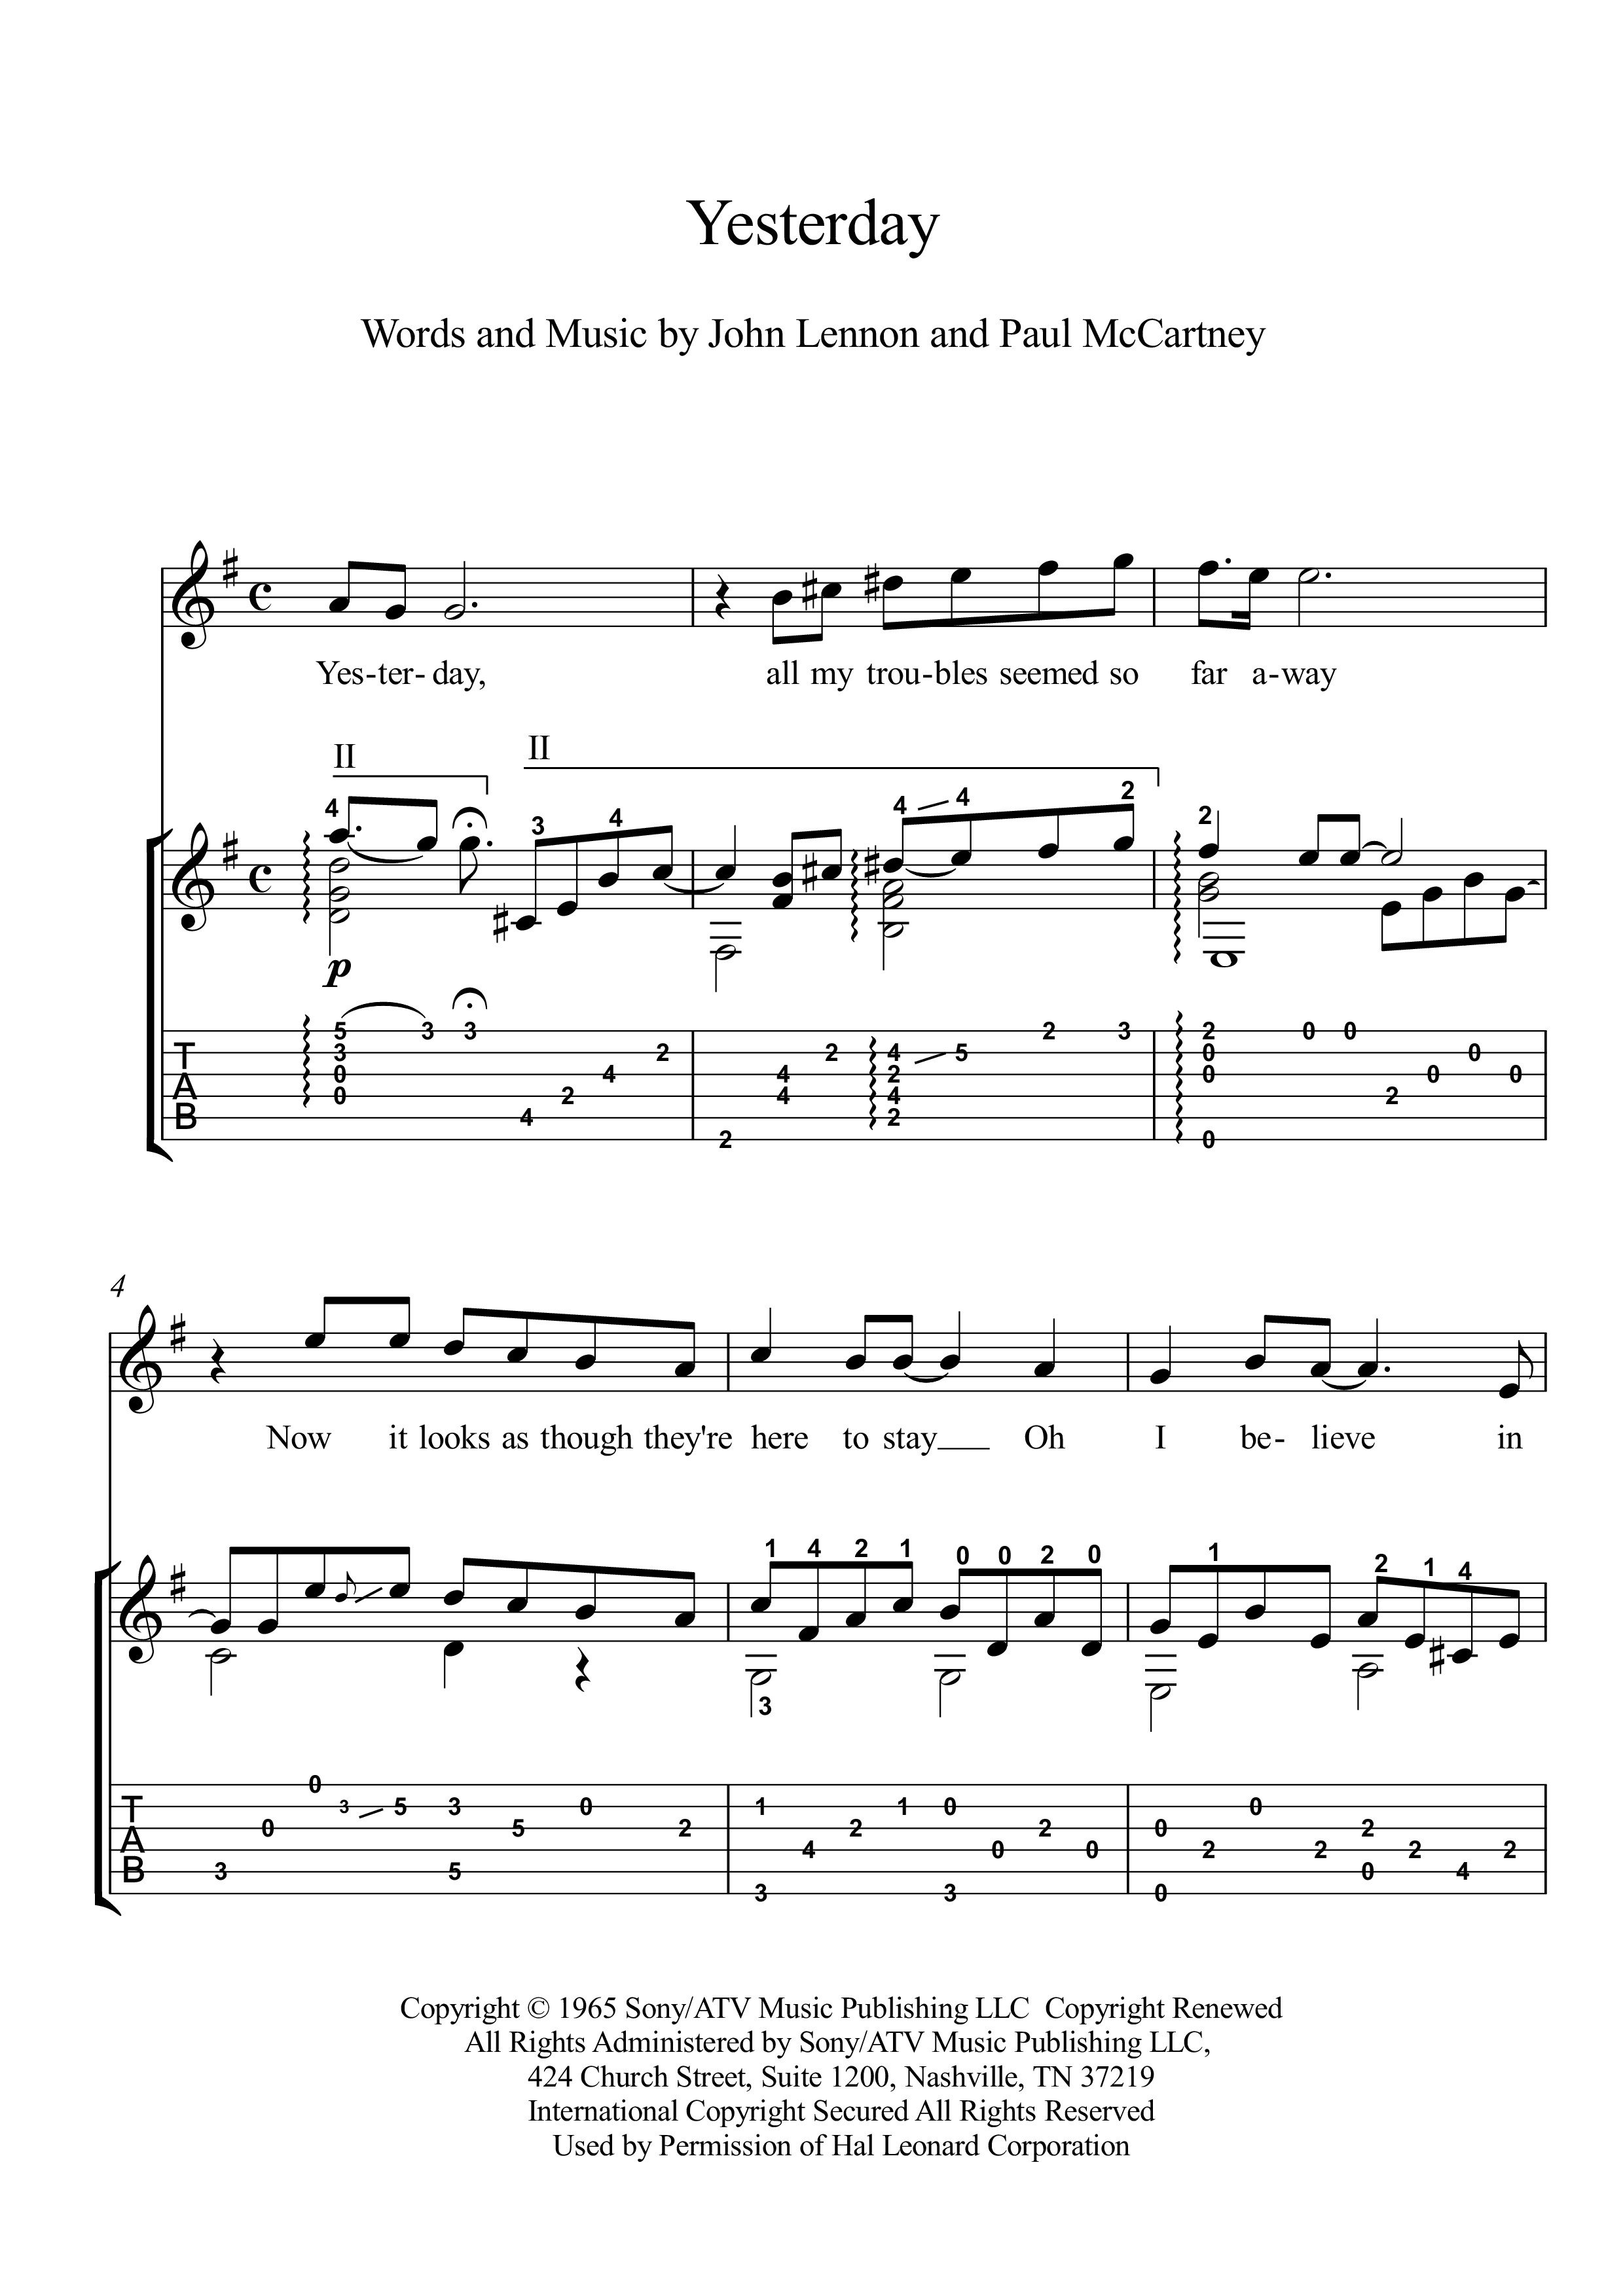 Yesterday by Beatles classical guitar solo score Yesterday is a